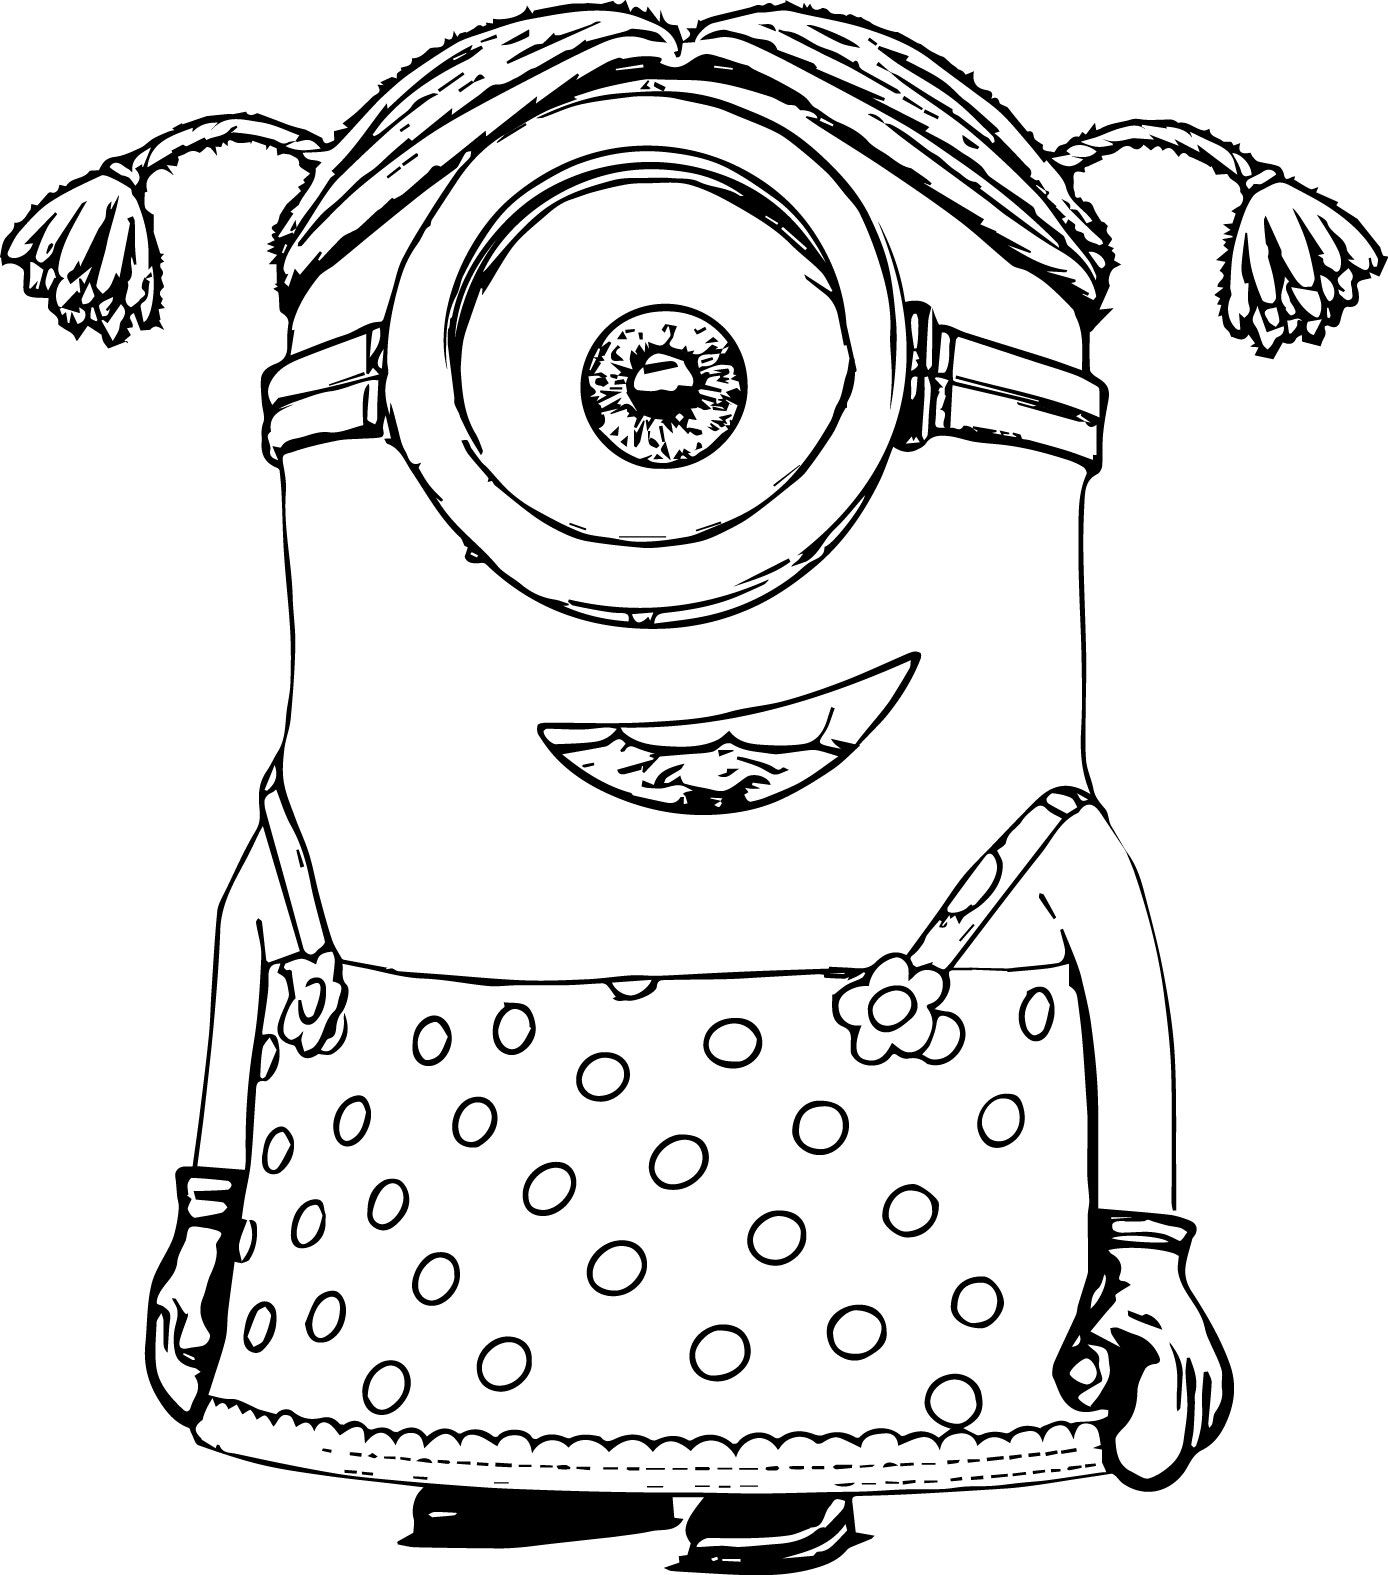 Minions coloring pages peace minion ~ Minions Coloring Pages | wecoloringpage | Minion coloring ...